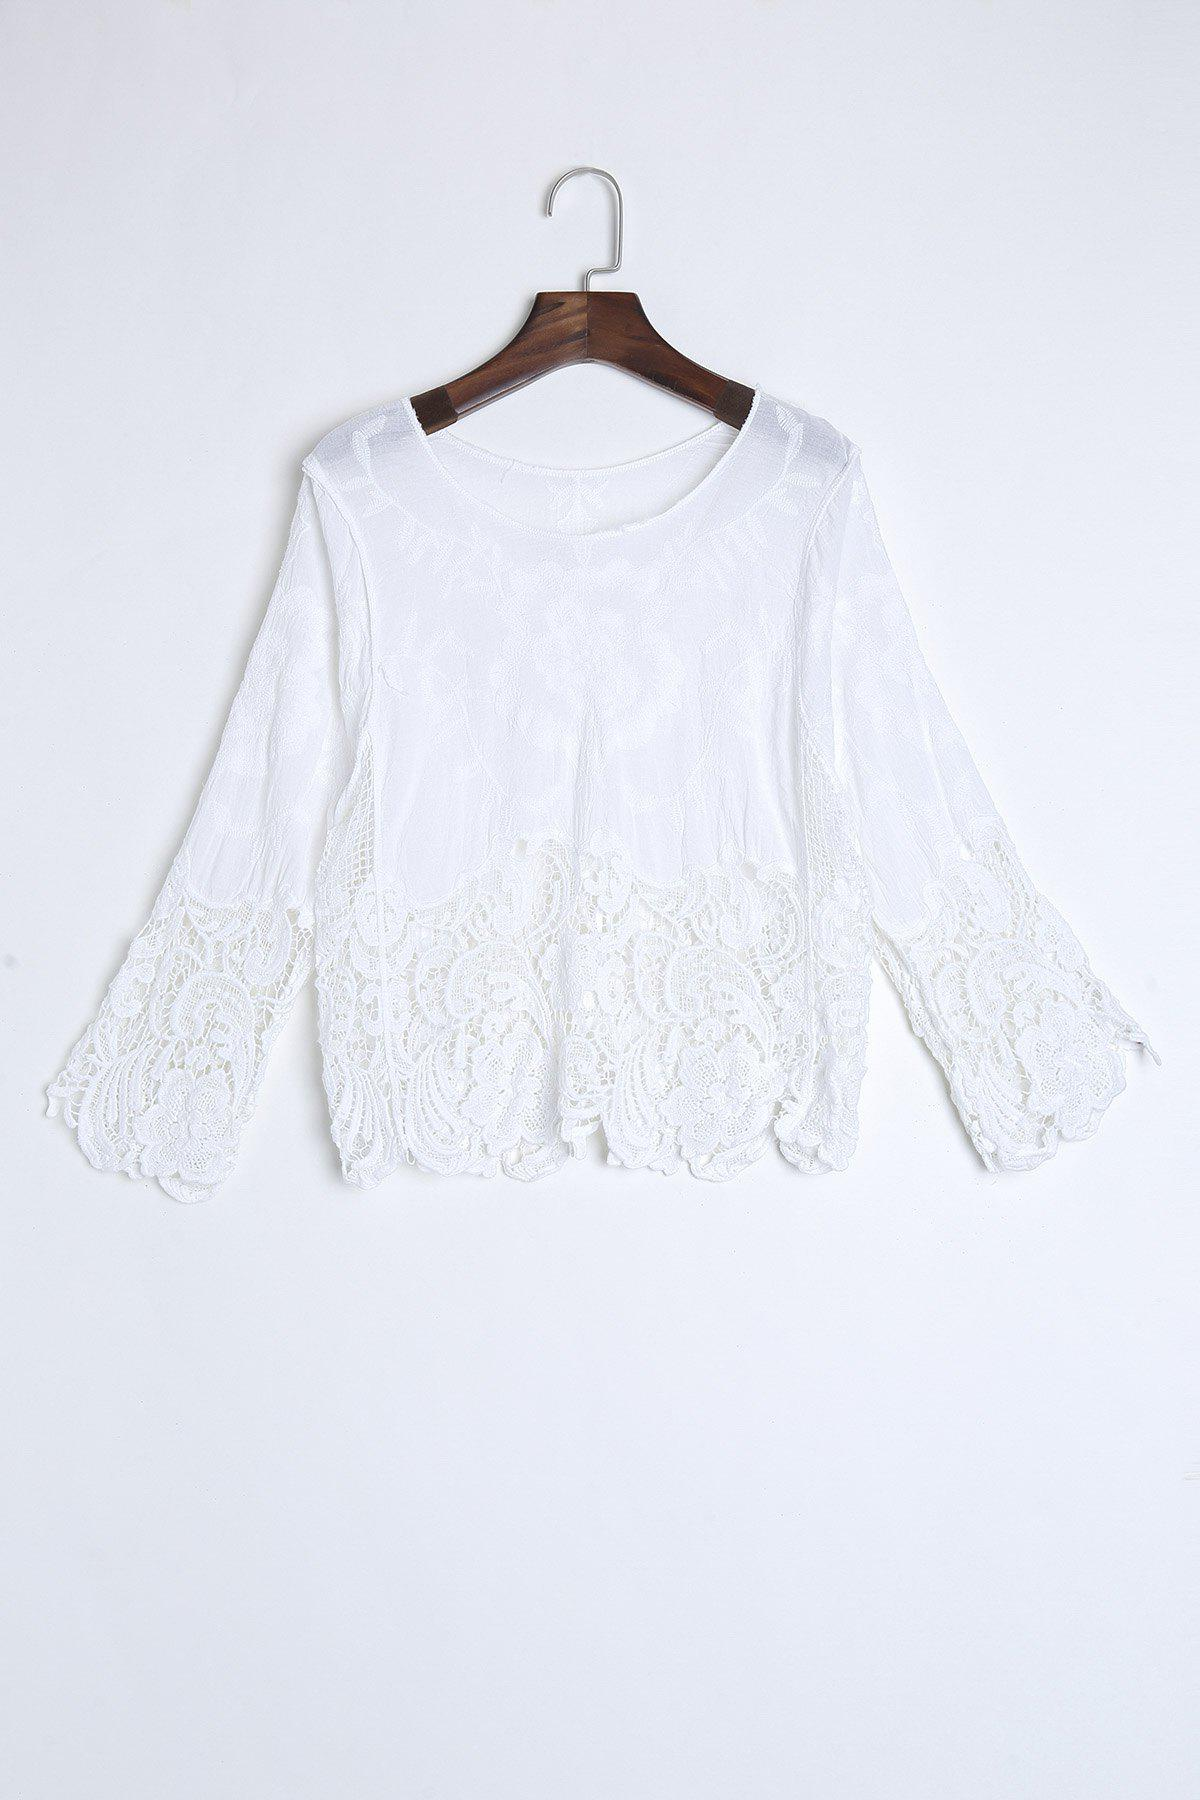 Chic Hollow Out Scoop Neck Batwing Sleeve Women's Cover Up